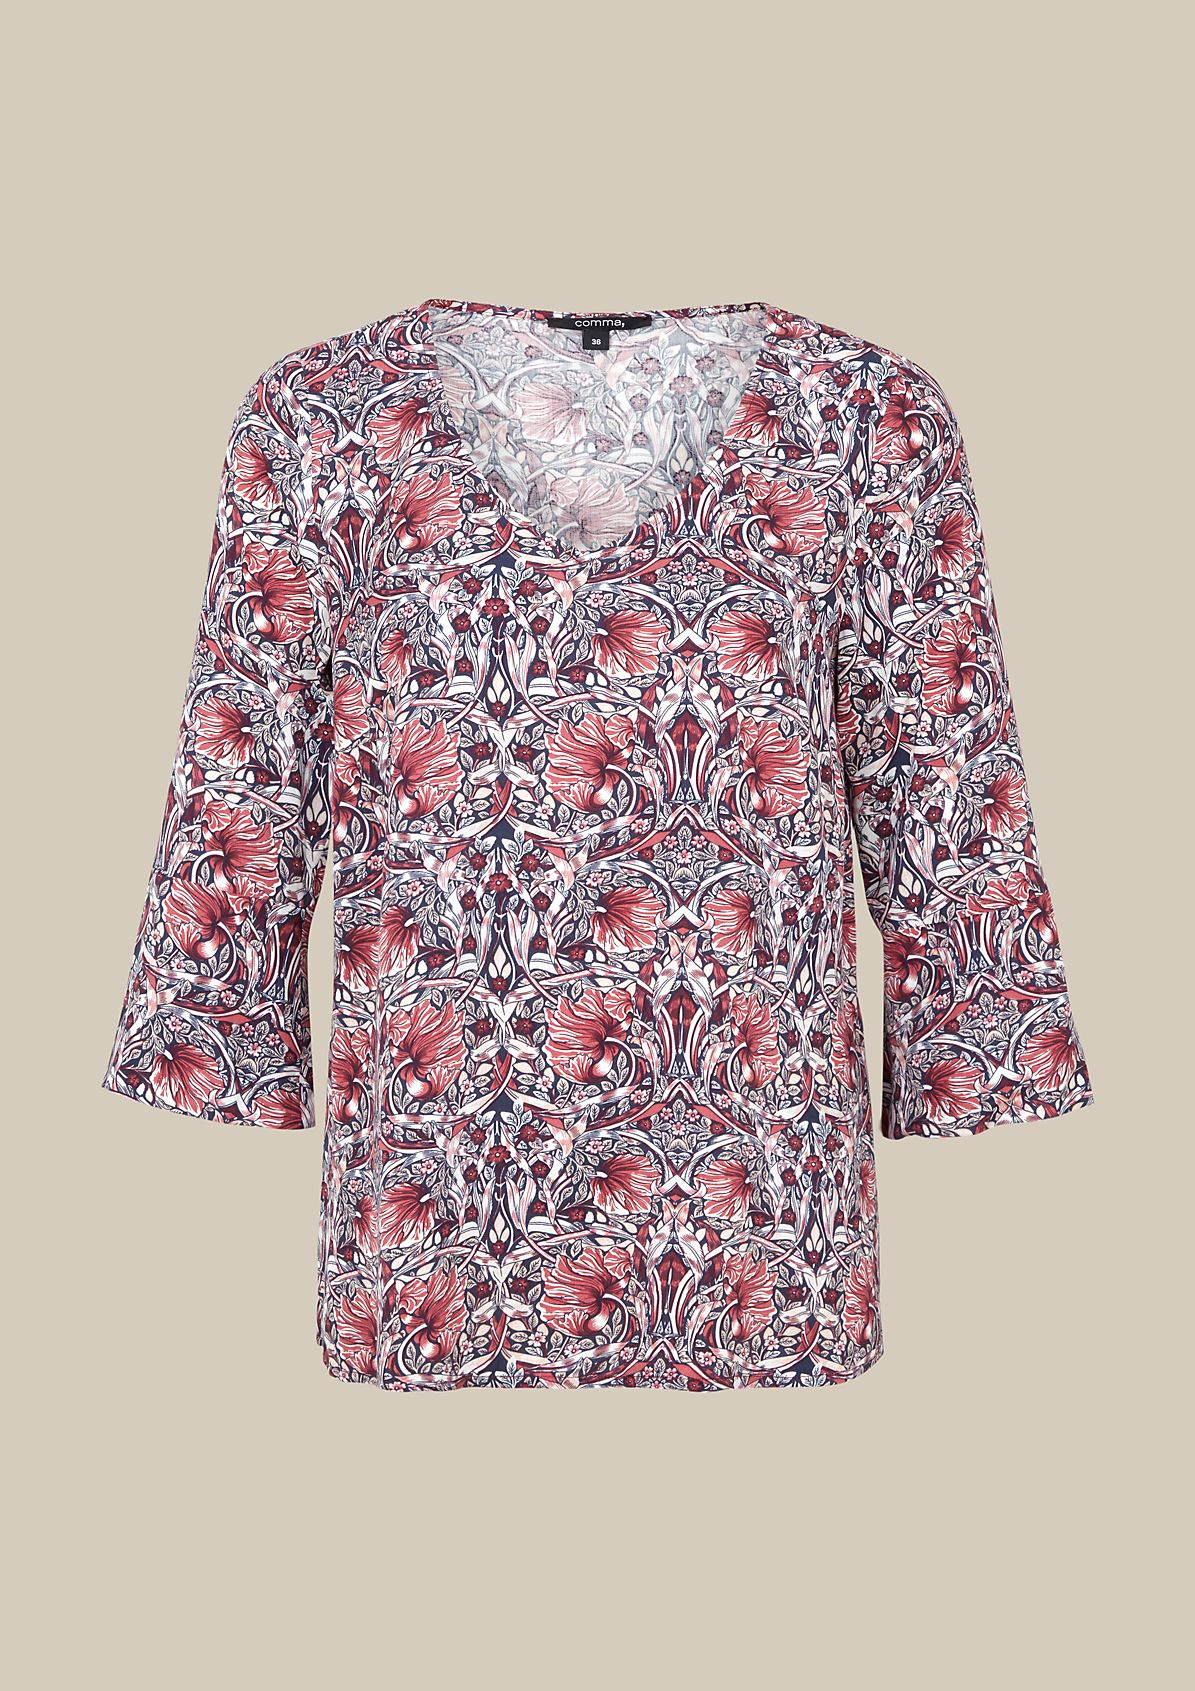 Edle 3/4-Arm Bluse mit dekorativem Allovermuster